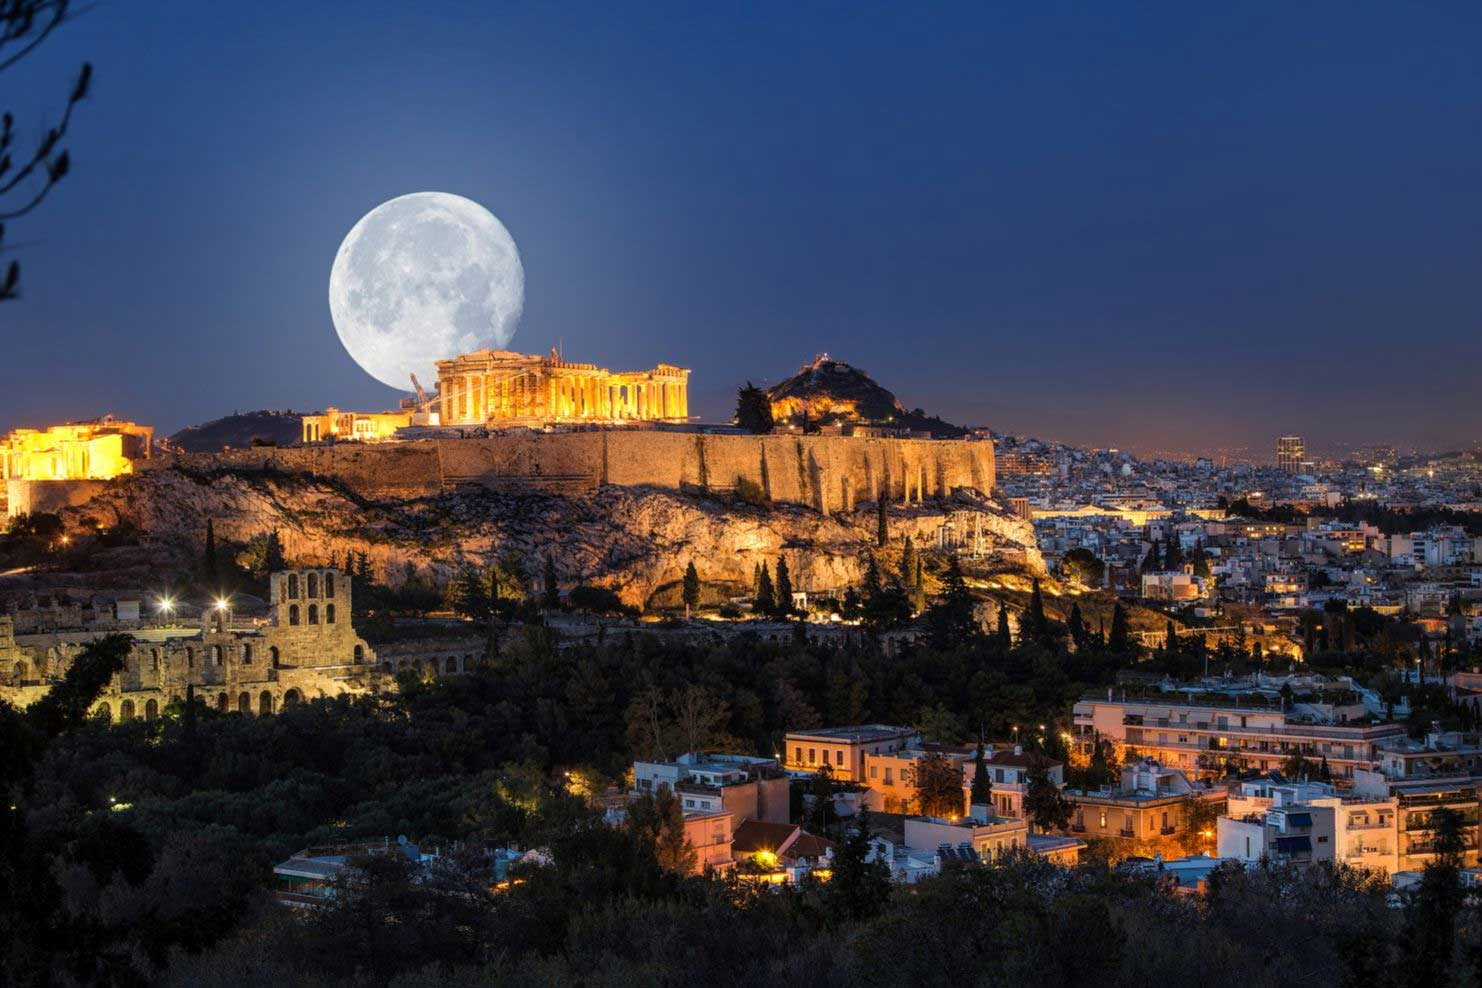 022-Athens-Moon-Festival